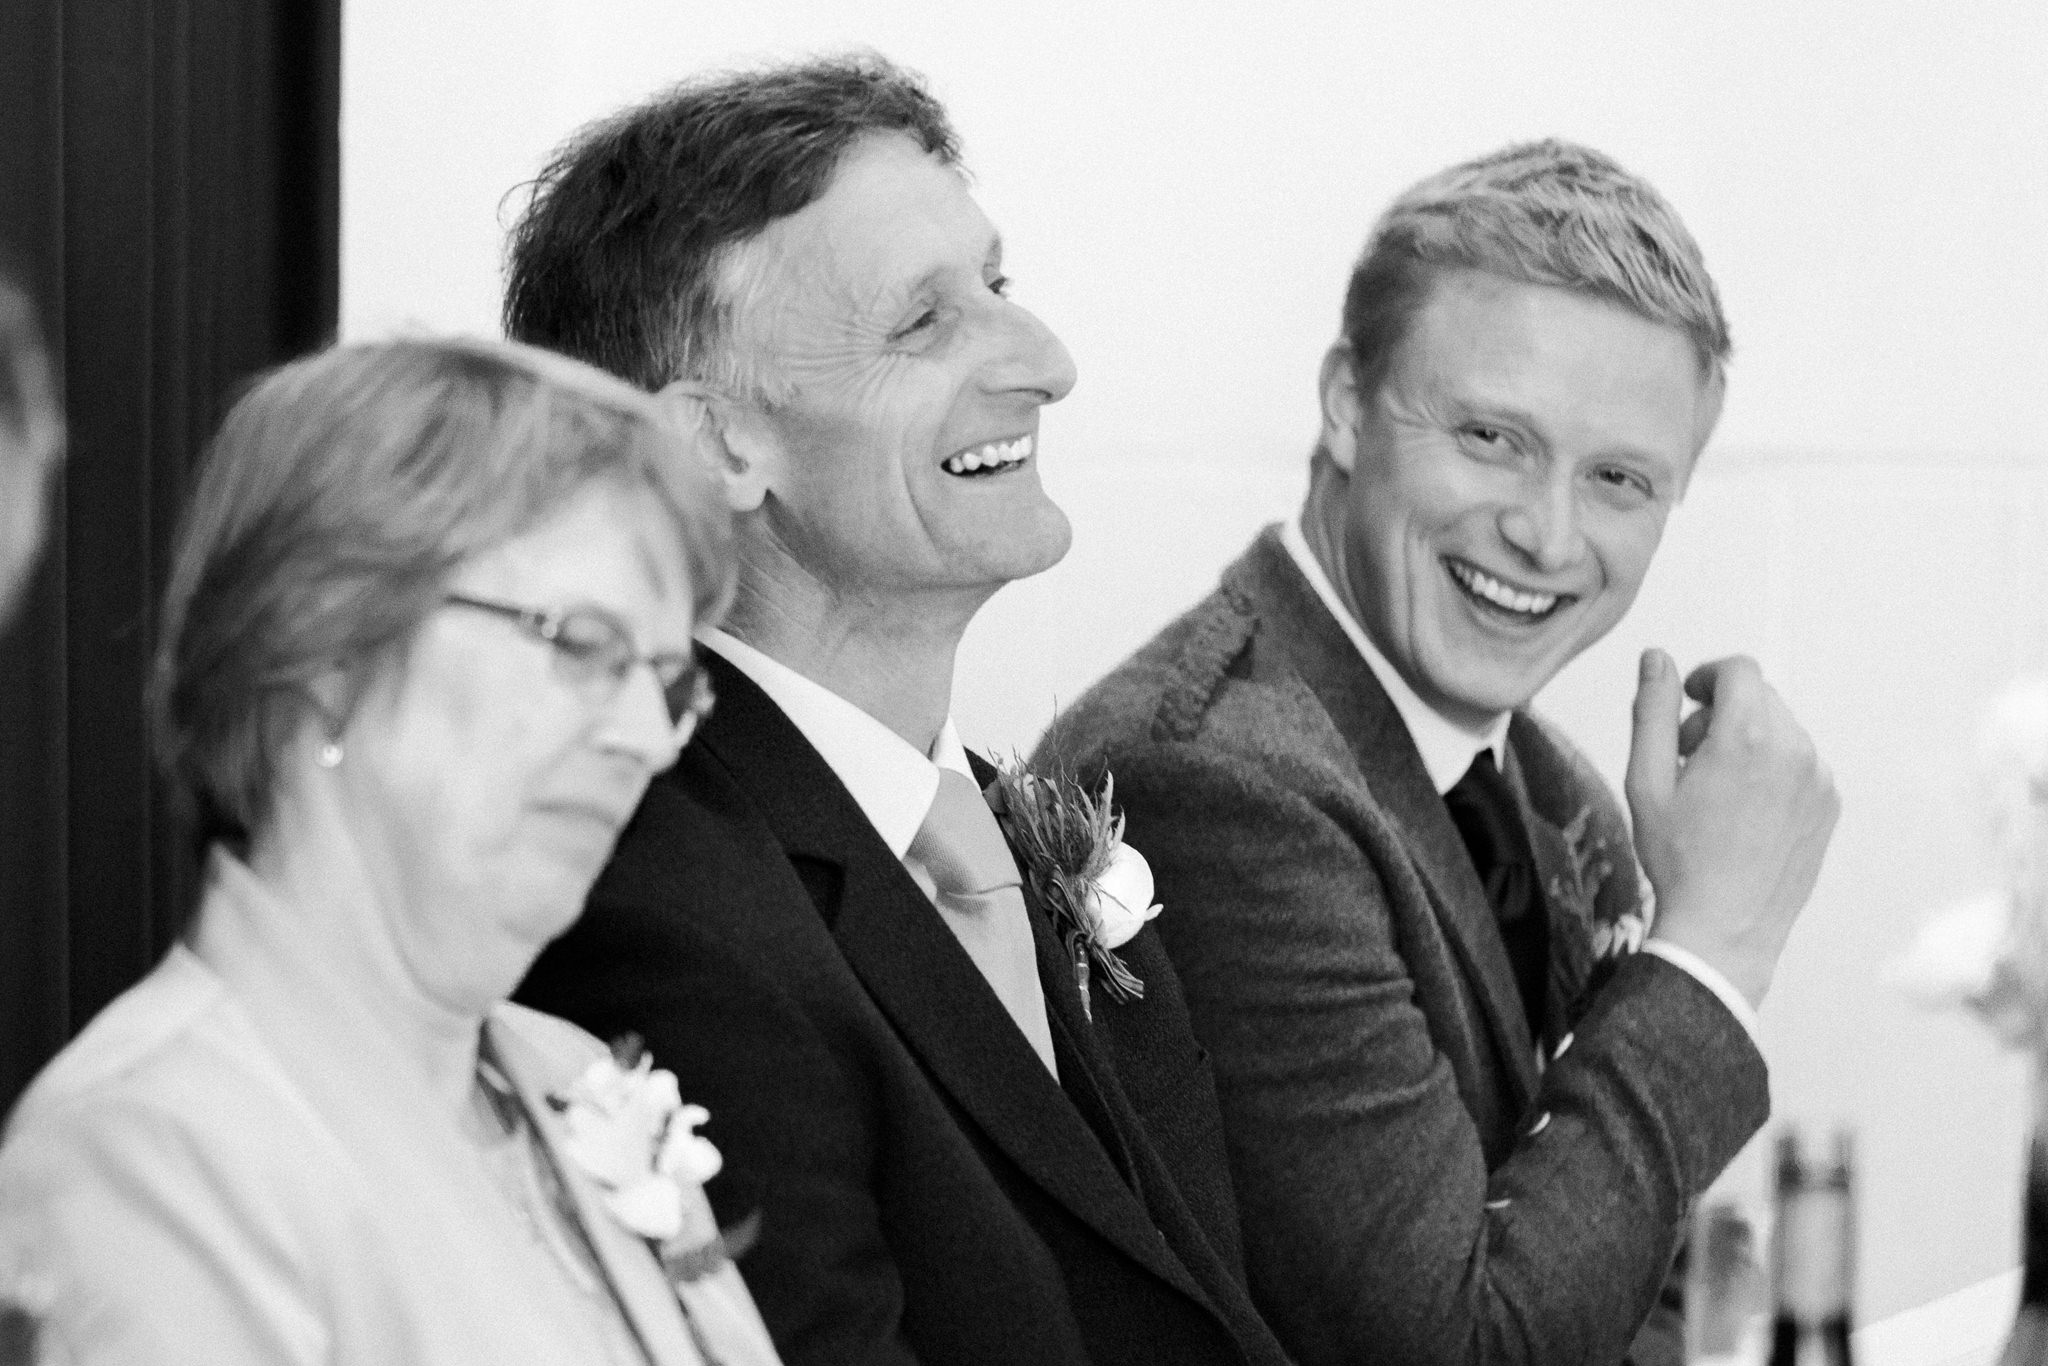 107-relaxed-wedding-photography.jpg